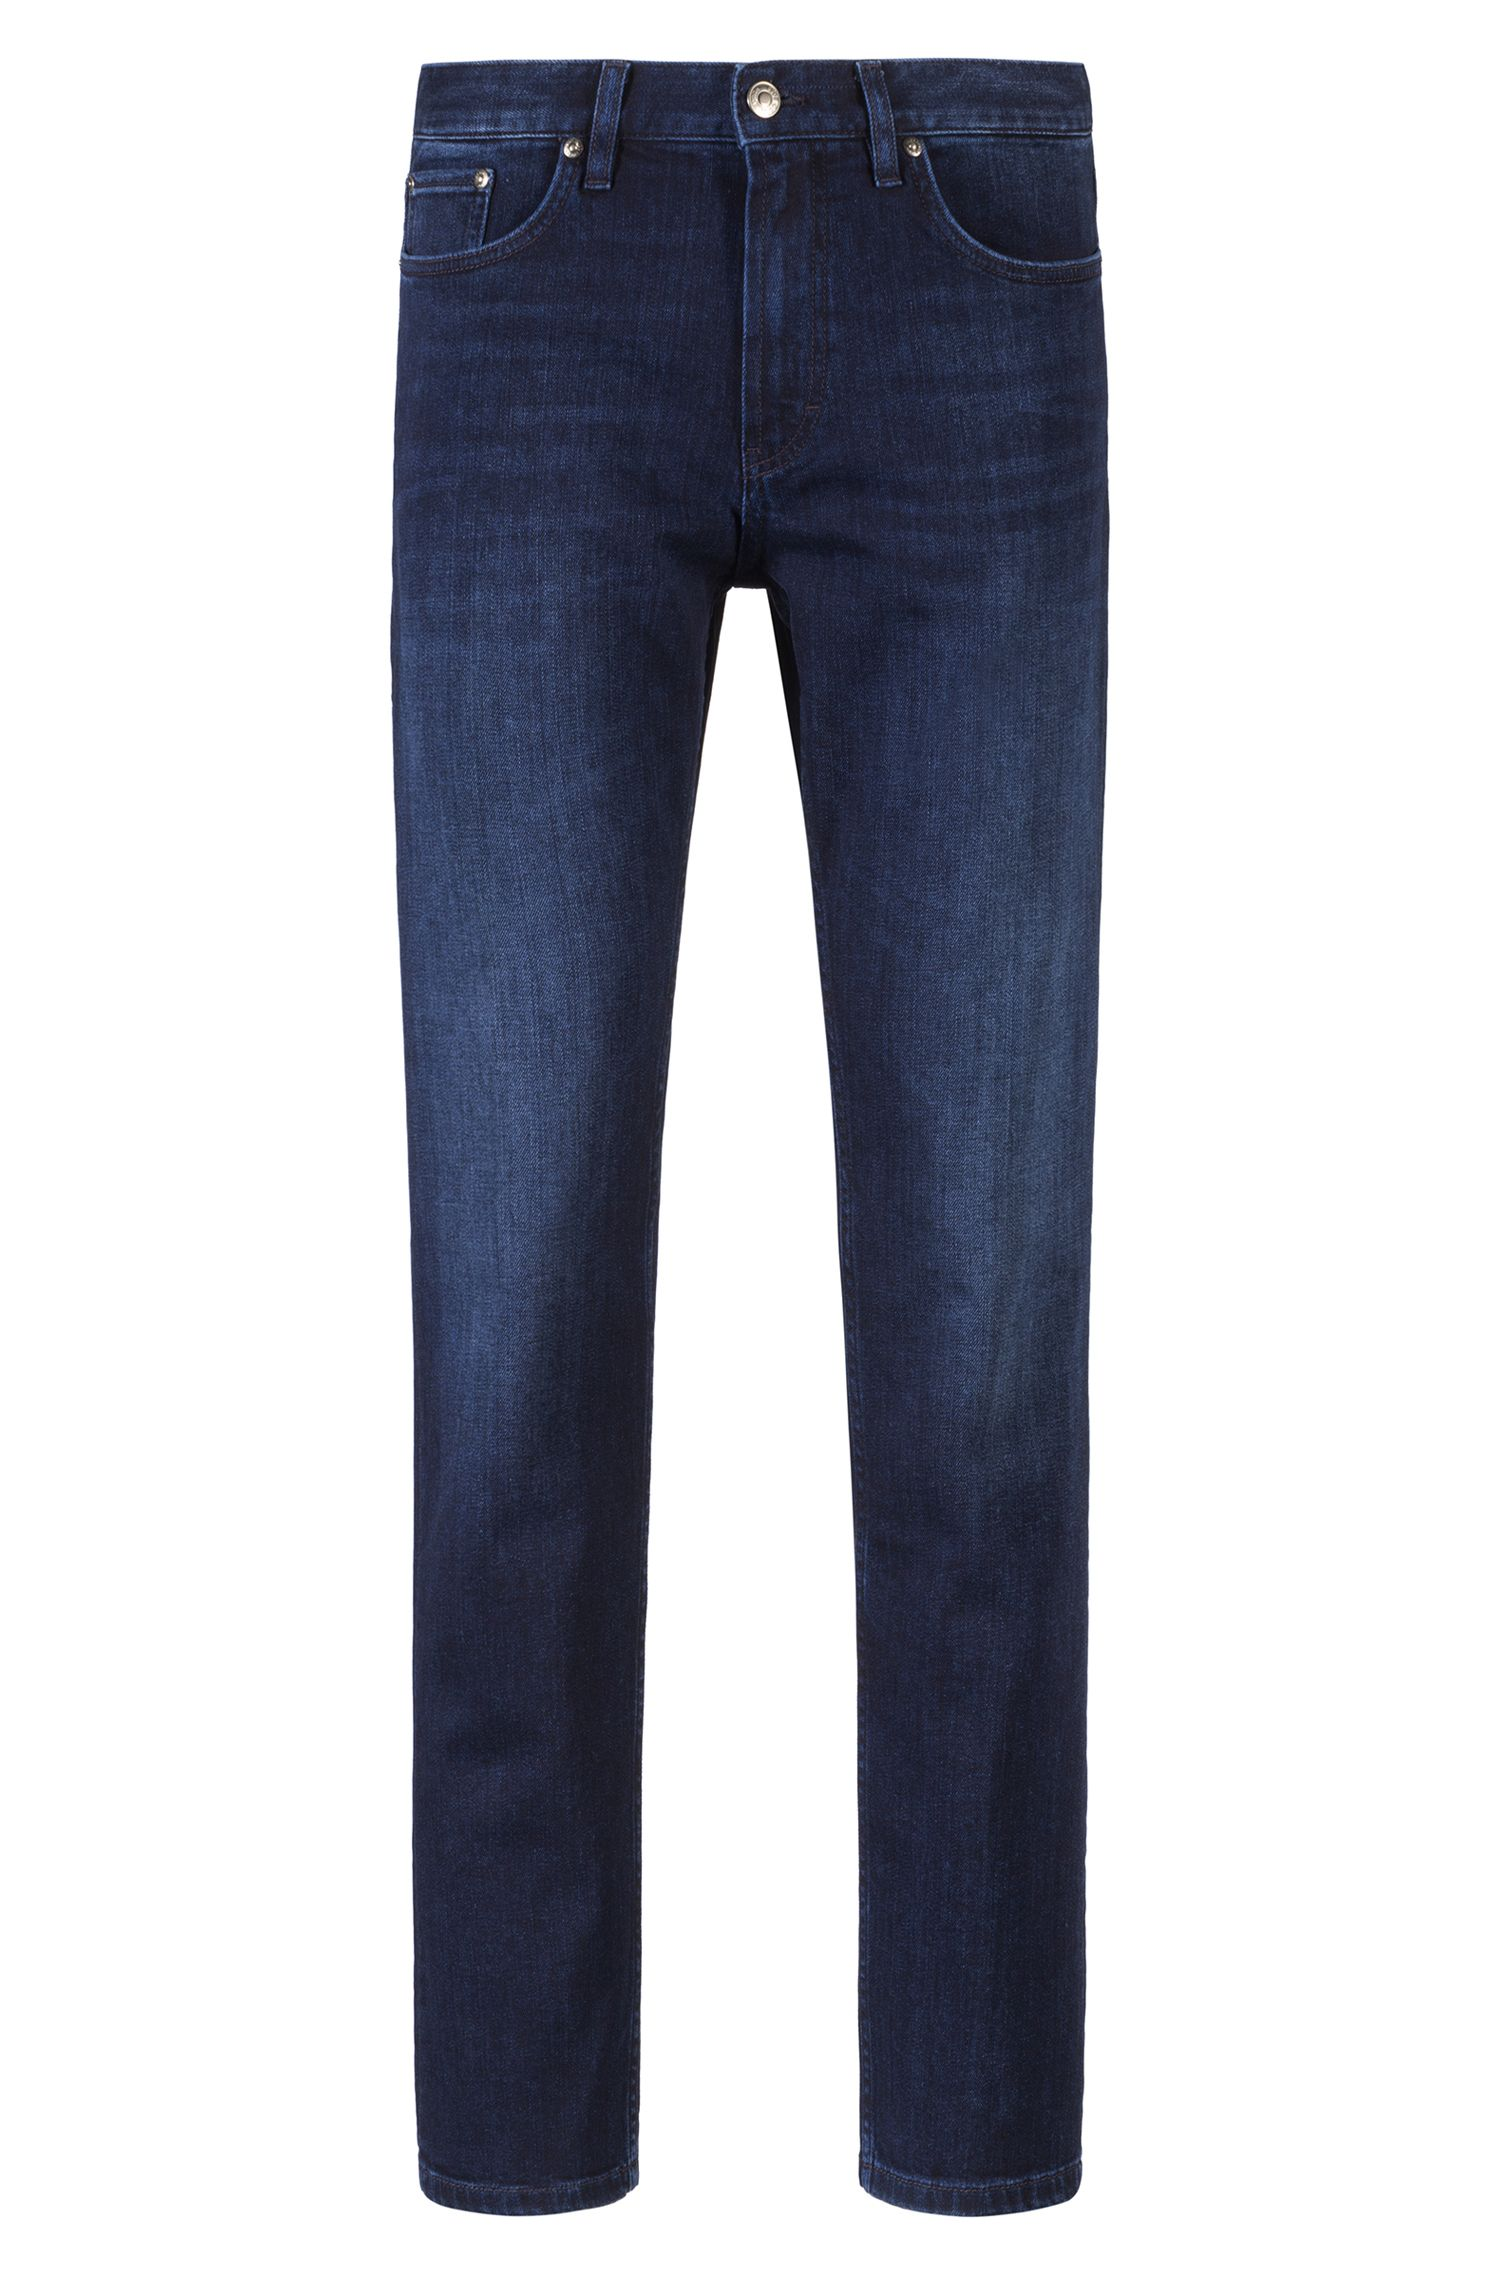 Regular-Fit Jeans aus Stretch-Denim mit geradem Beinverlauf, Dunkelblau